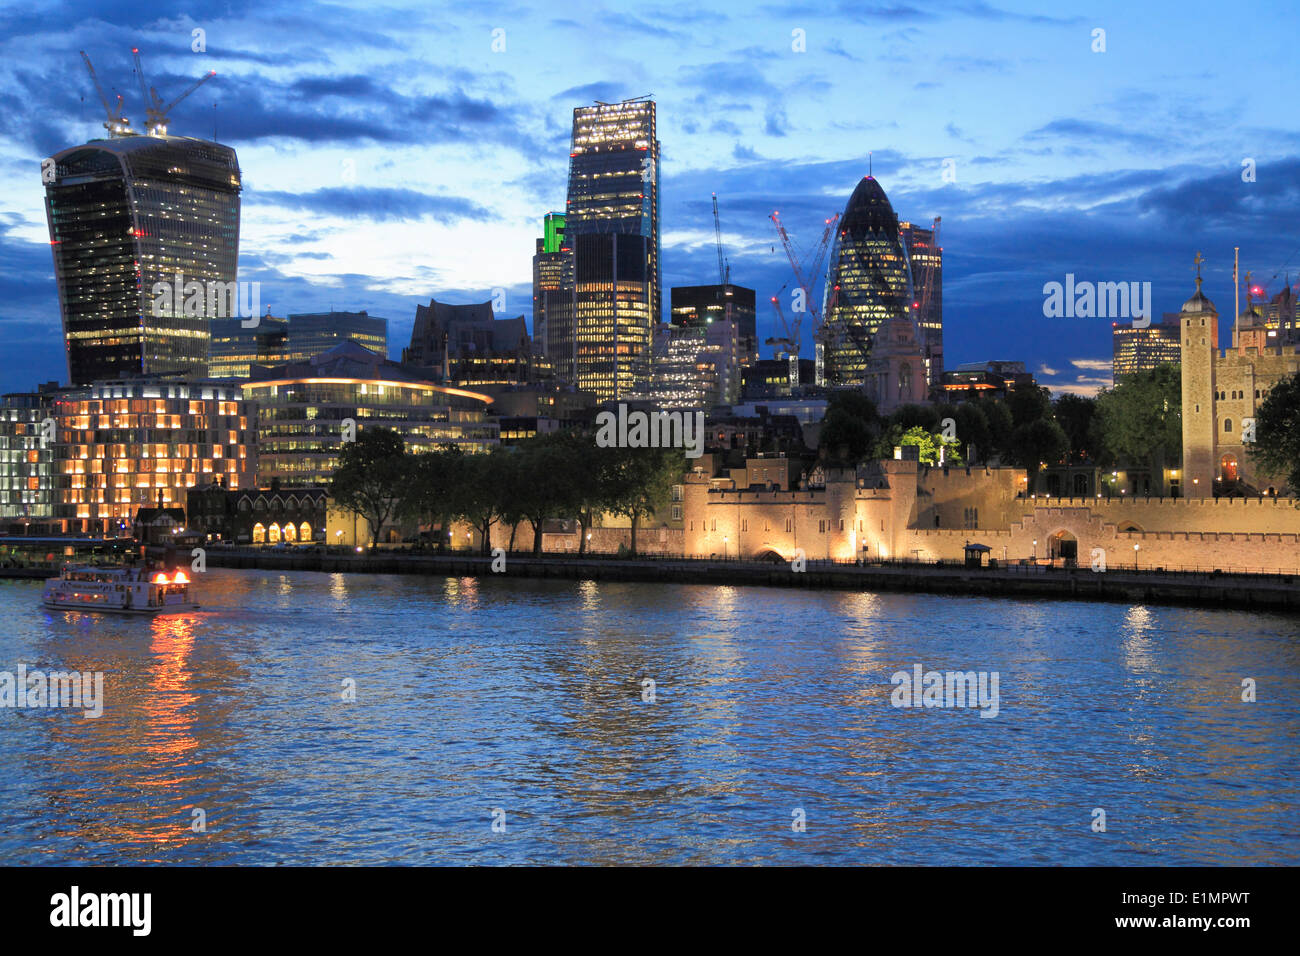 UK, England, London, City, skyline, skyscrapers, The Tower, - Stock Image